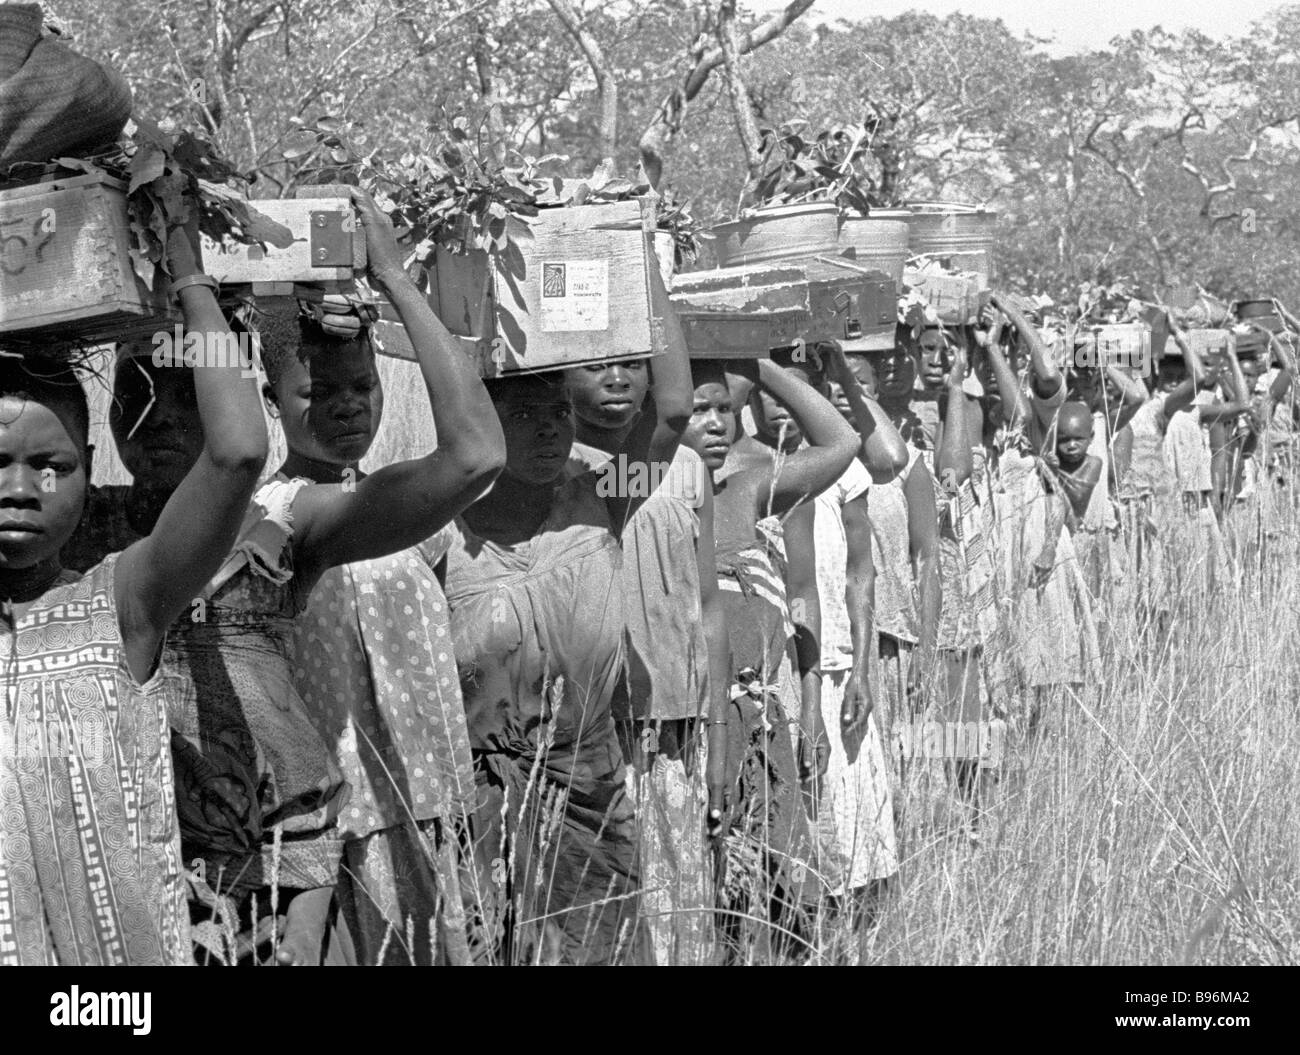 Caravan porters delivering arms ammunition clothes and medicine to a FRELIMO guerilla base - Stock Image